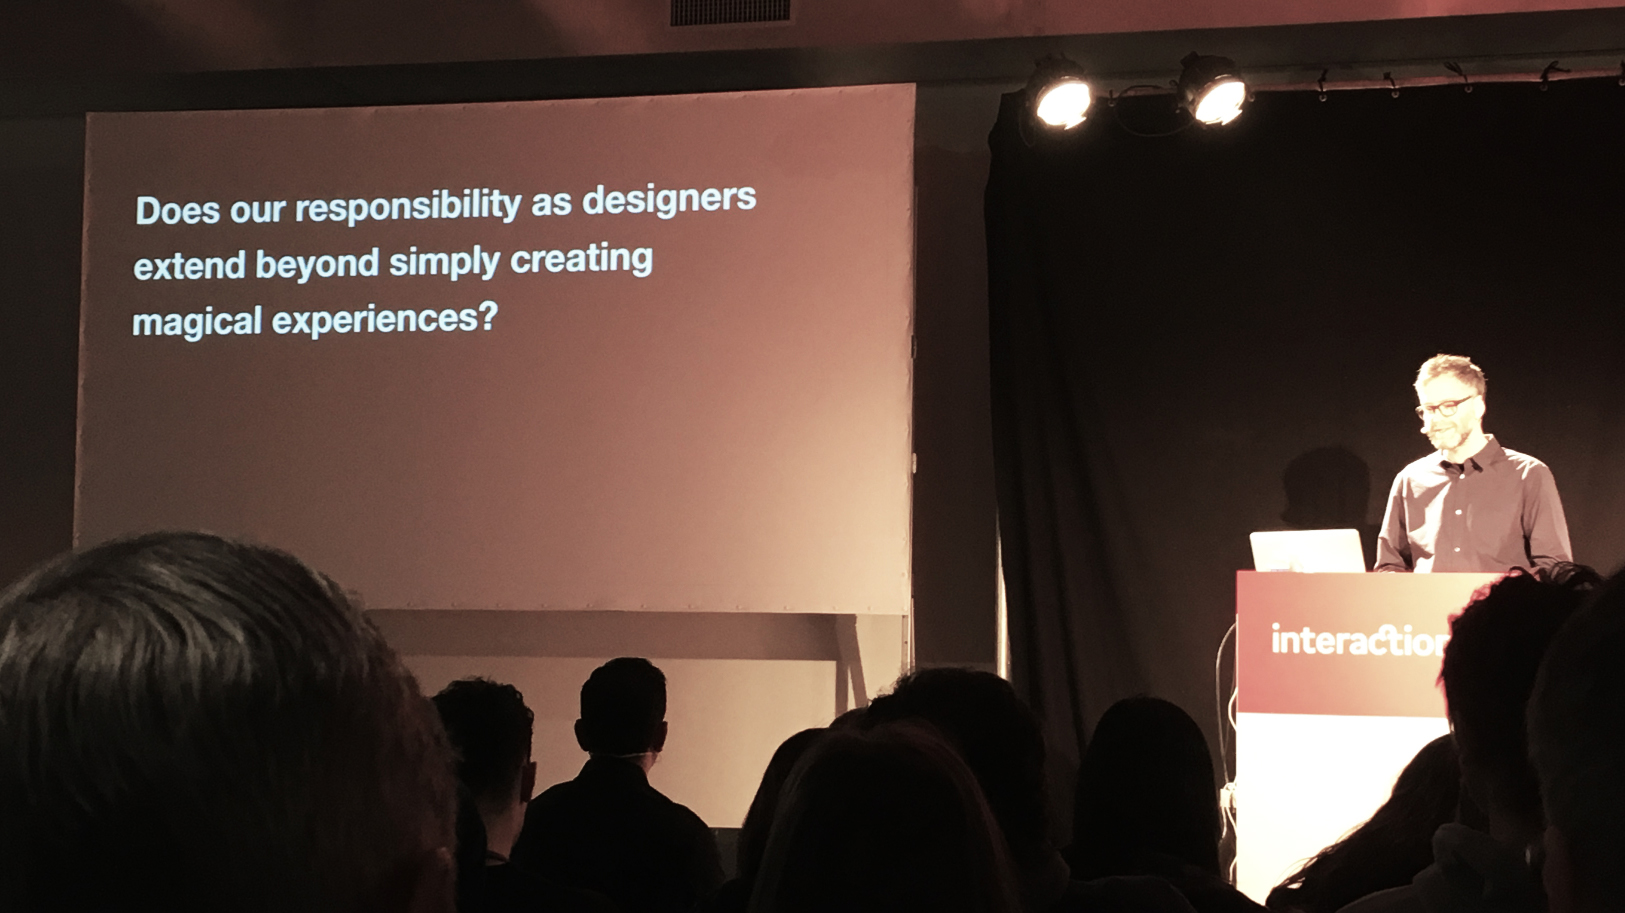 Does our responsibility as designers extend beyond simply creating magical experiences